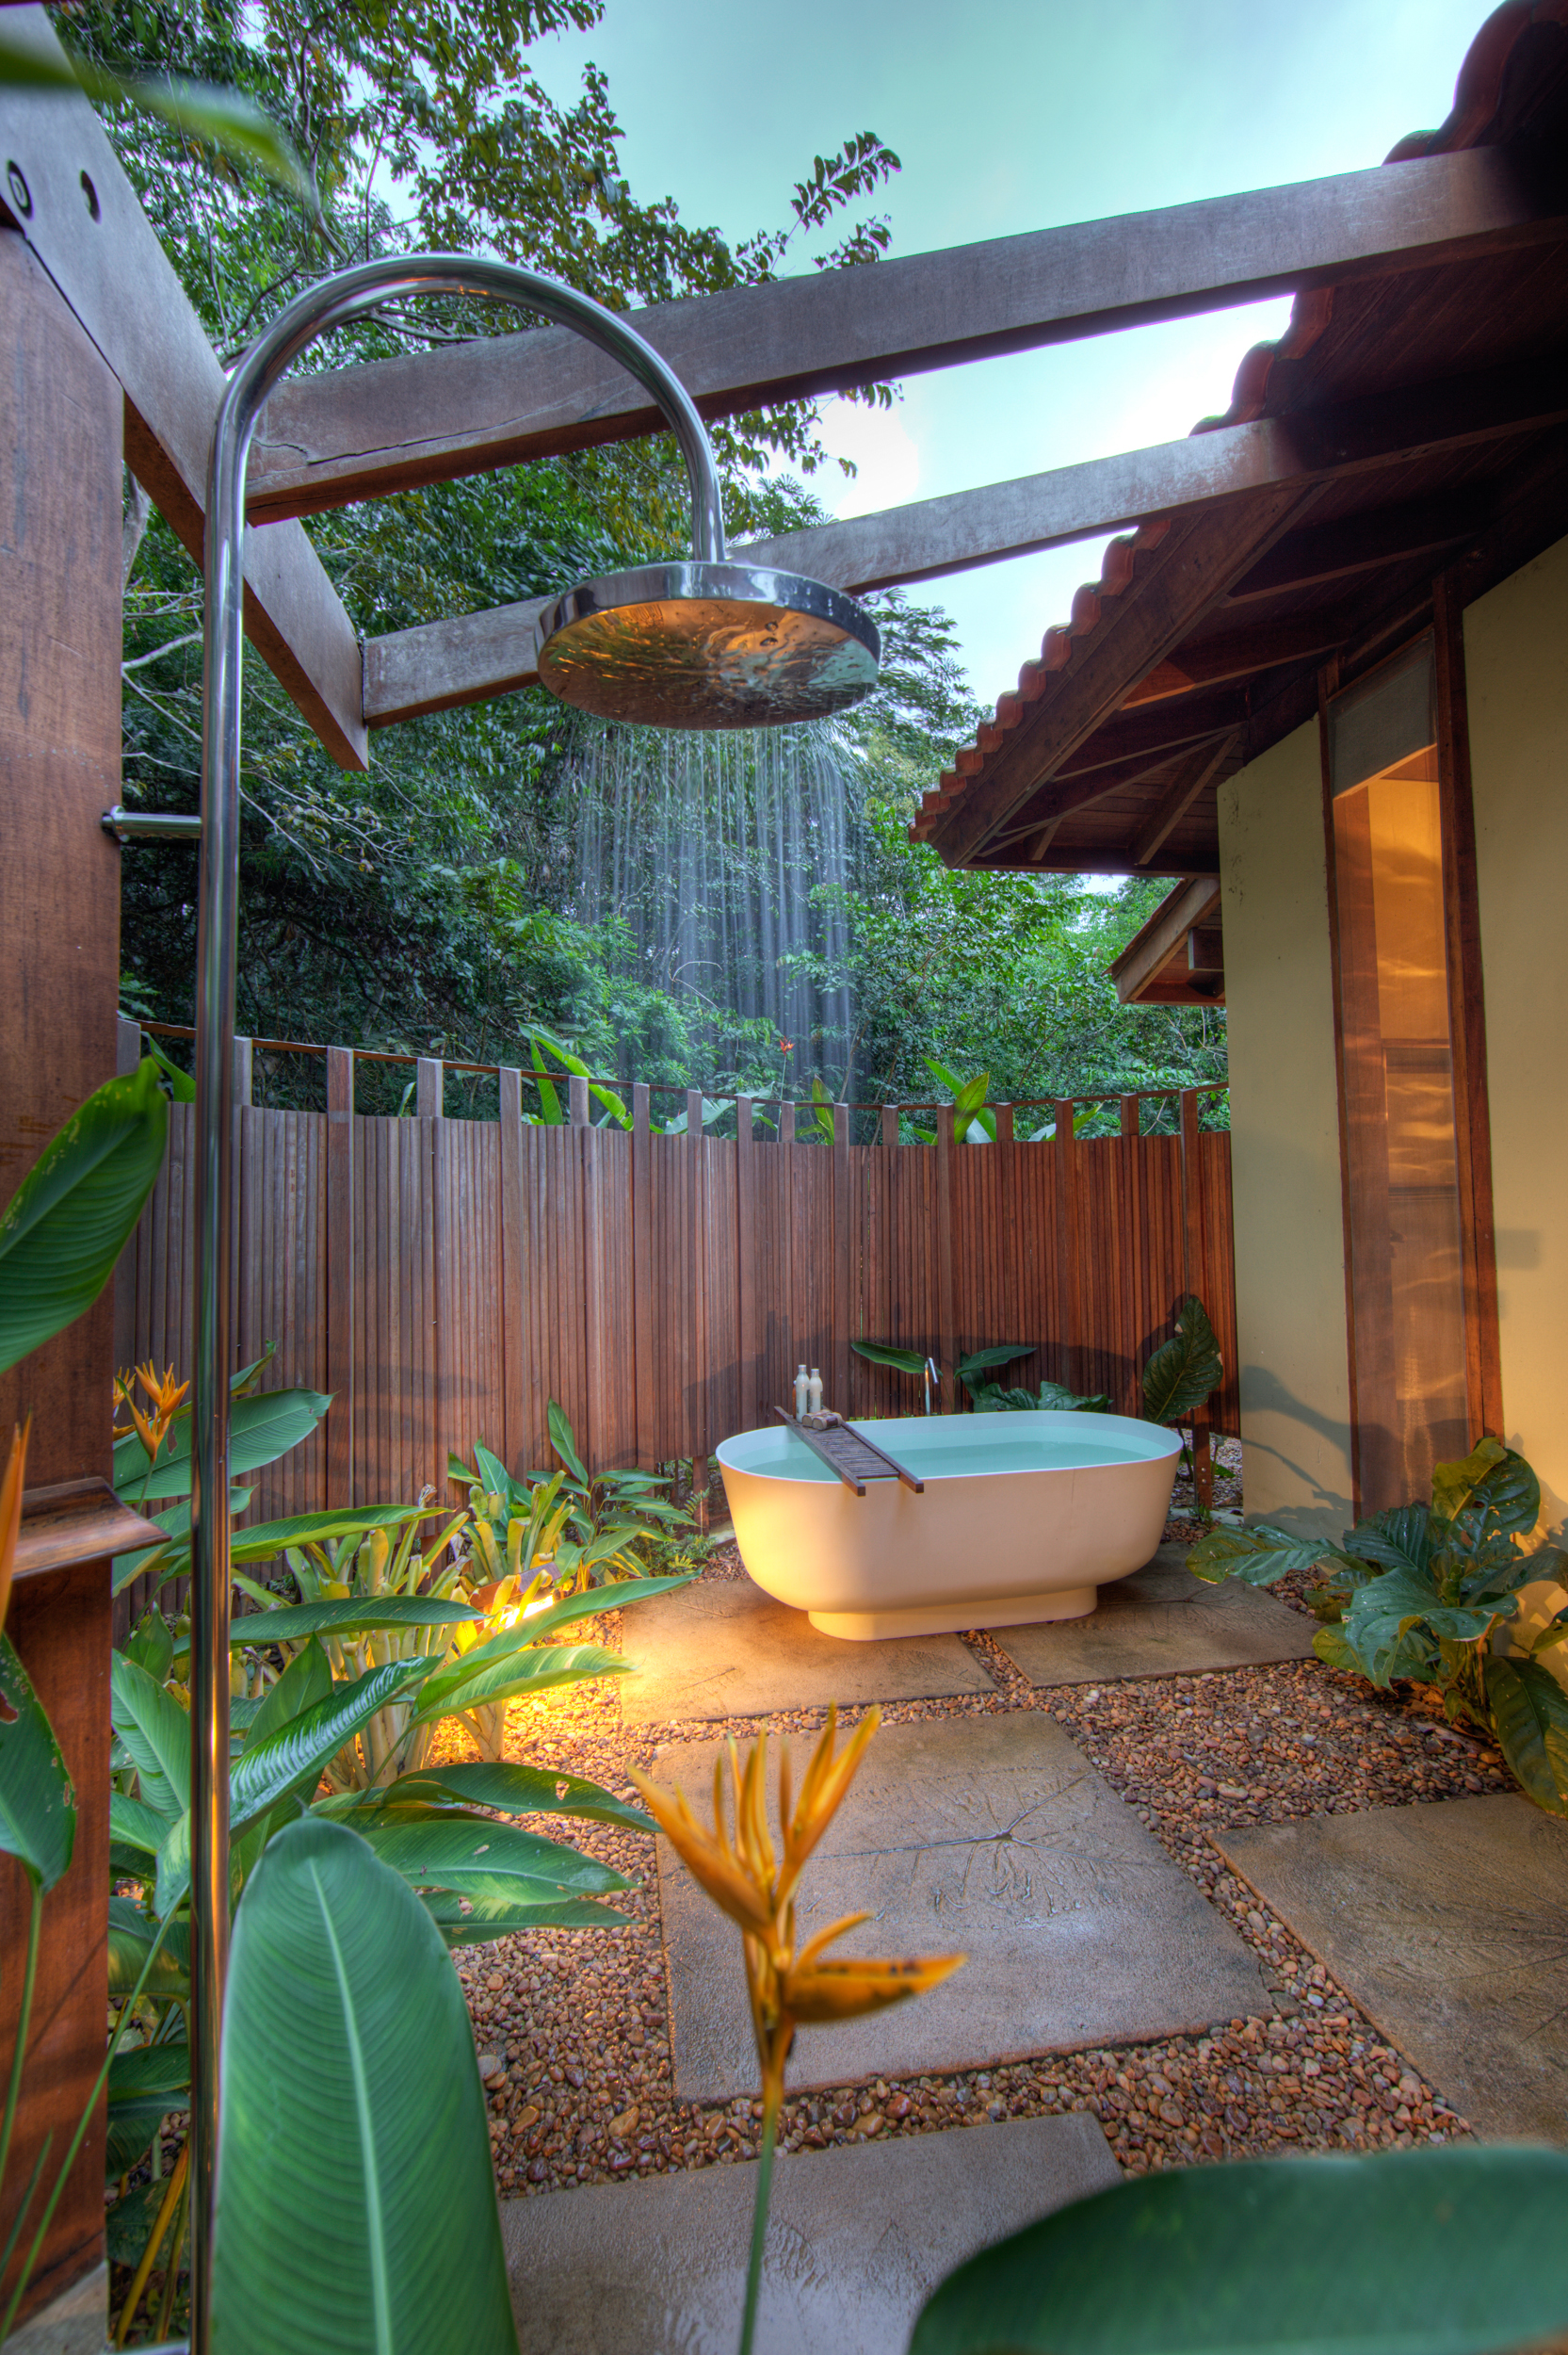 Cristalino Jungle Lodge Special Bungalow - Bathtub and Shower - Samuel Melim